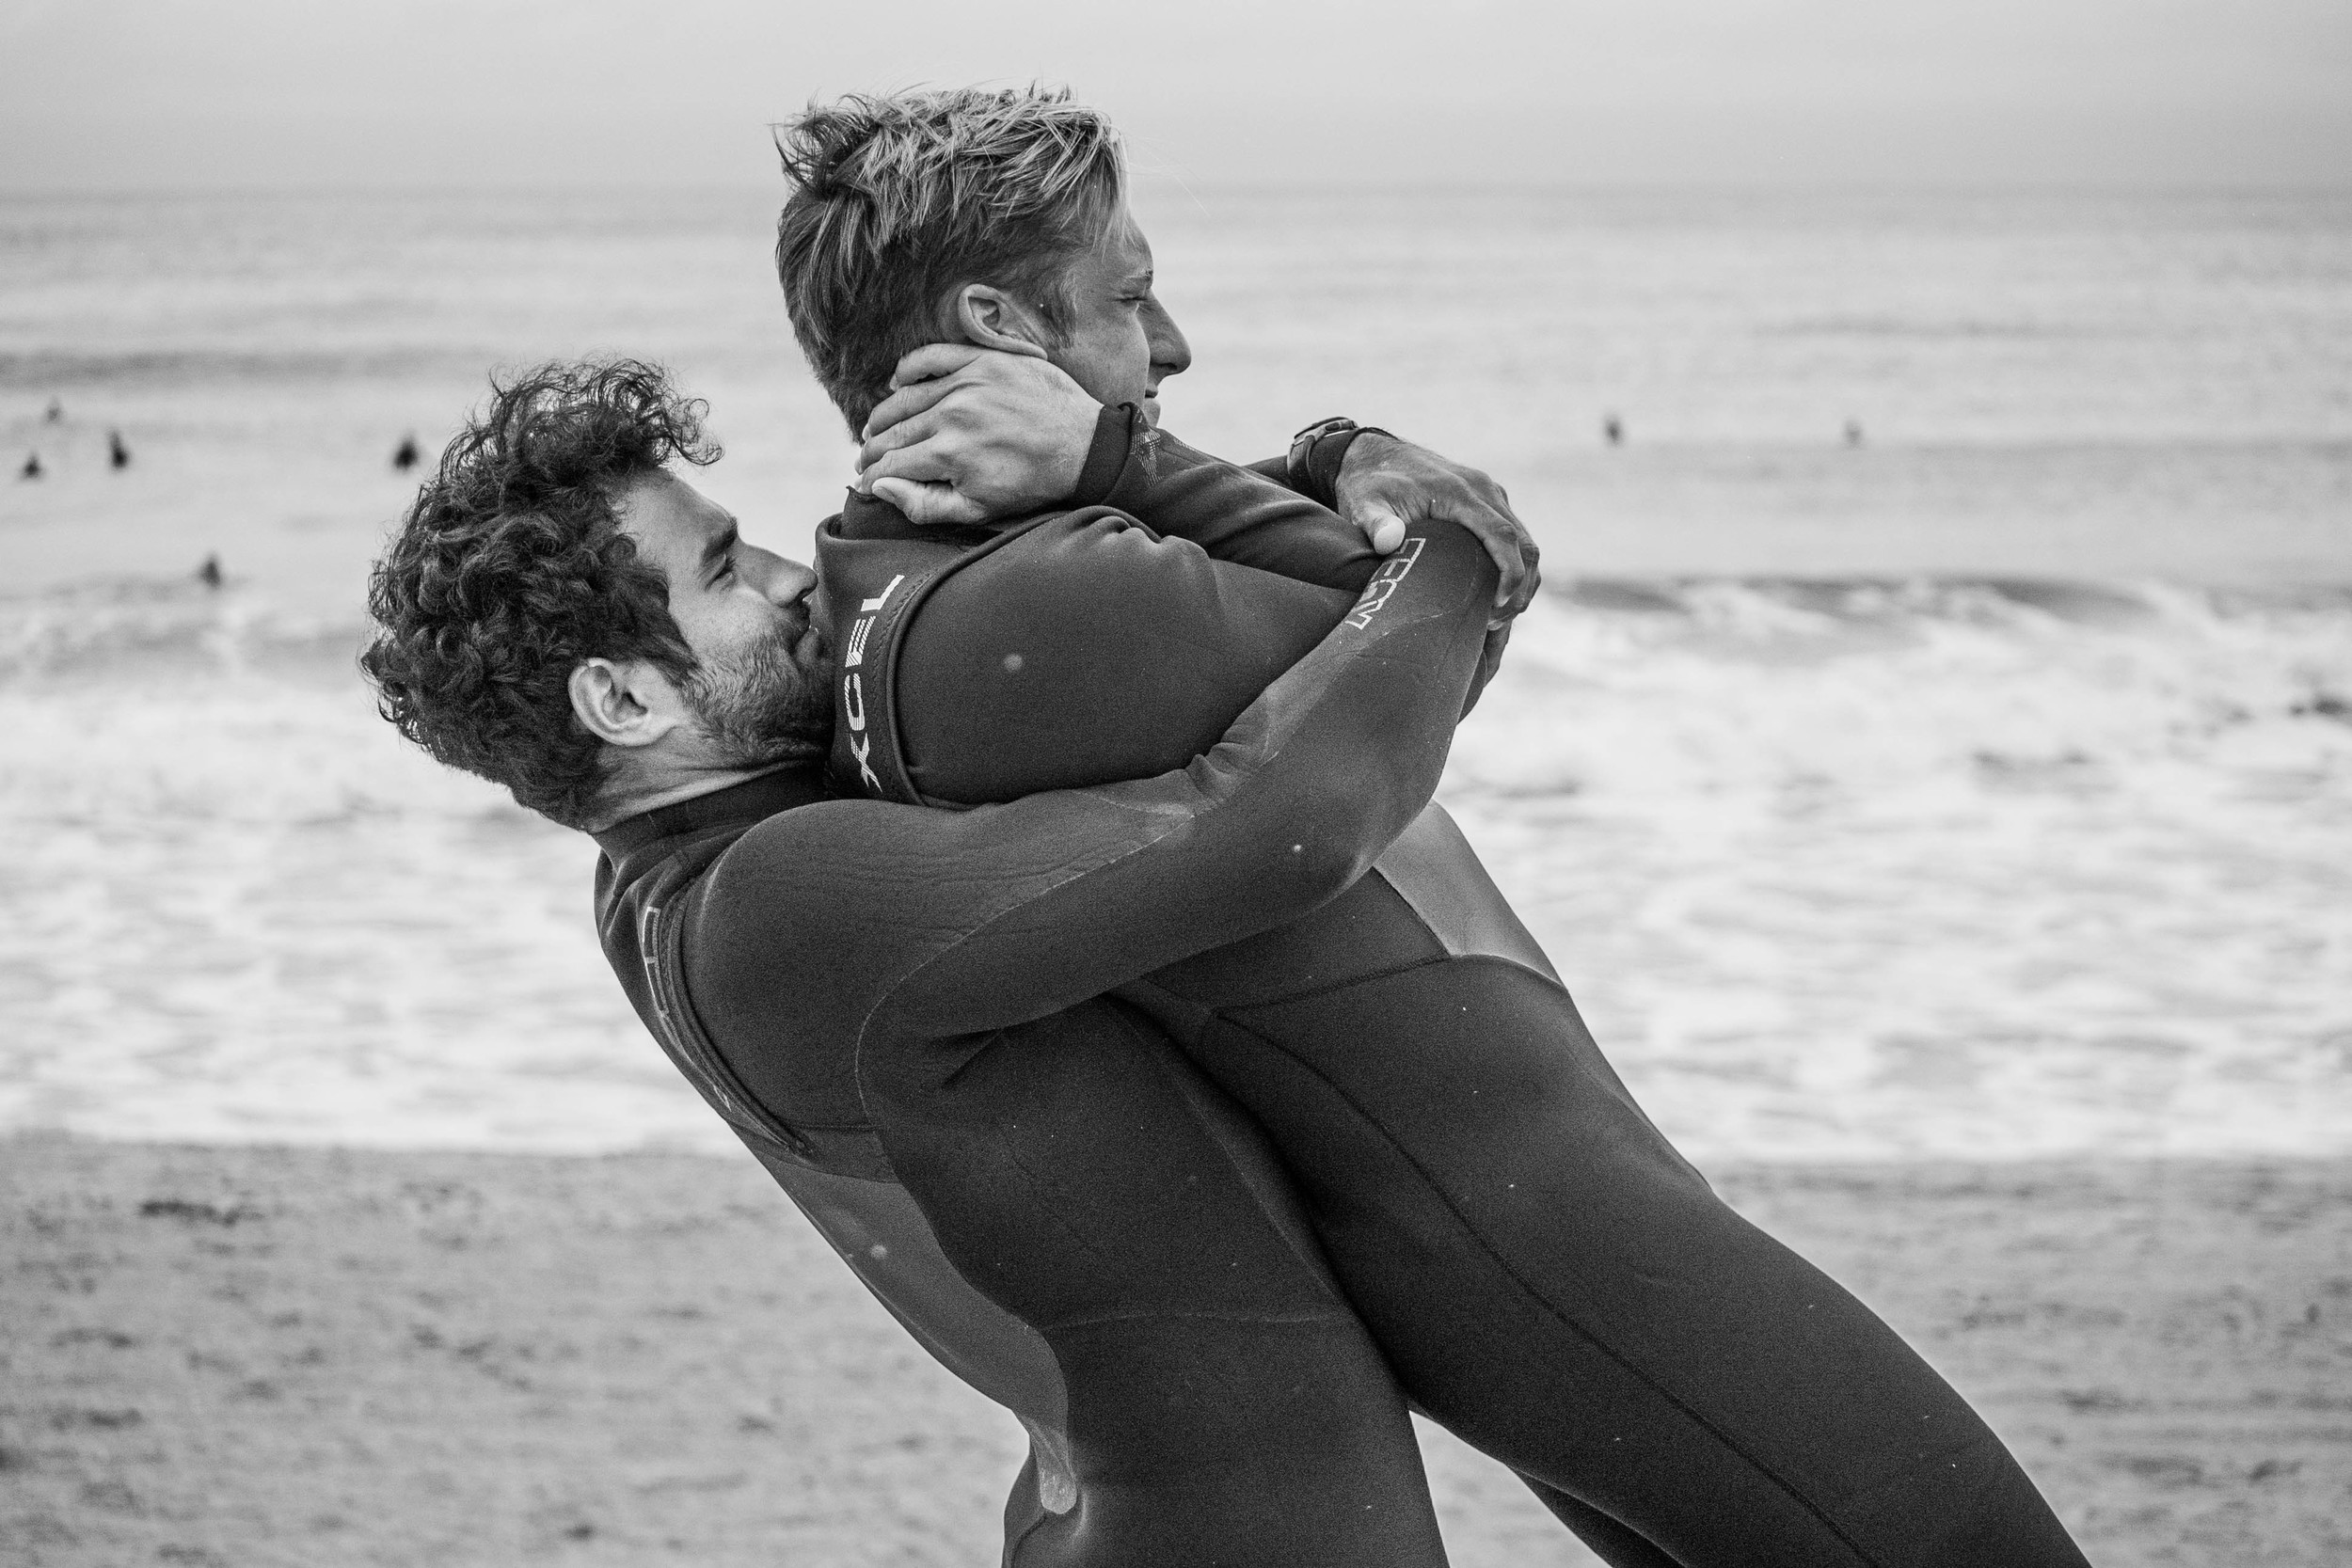 Mike the surf instructor/chiropractor